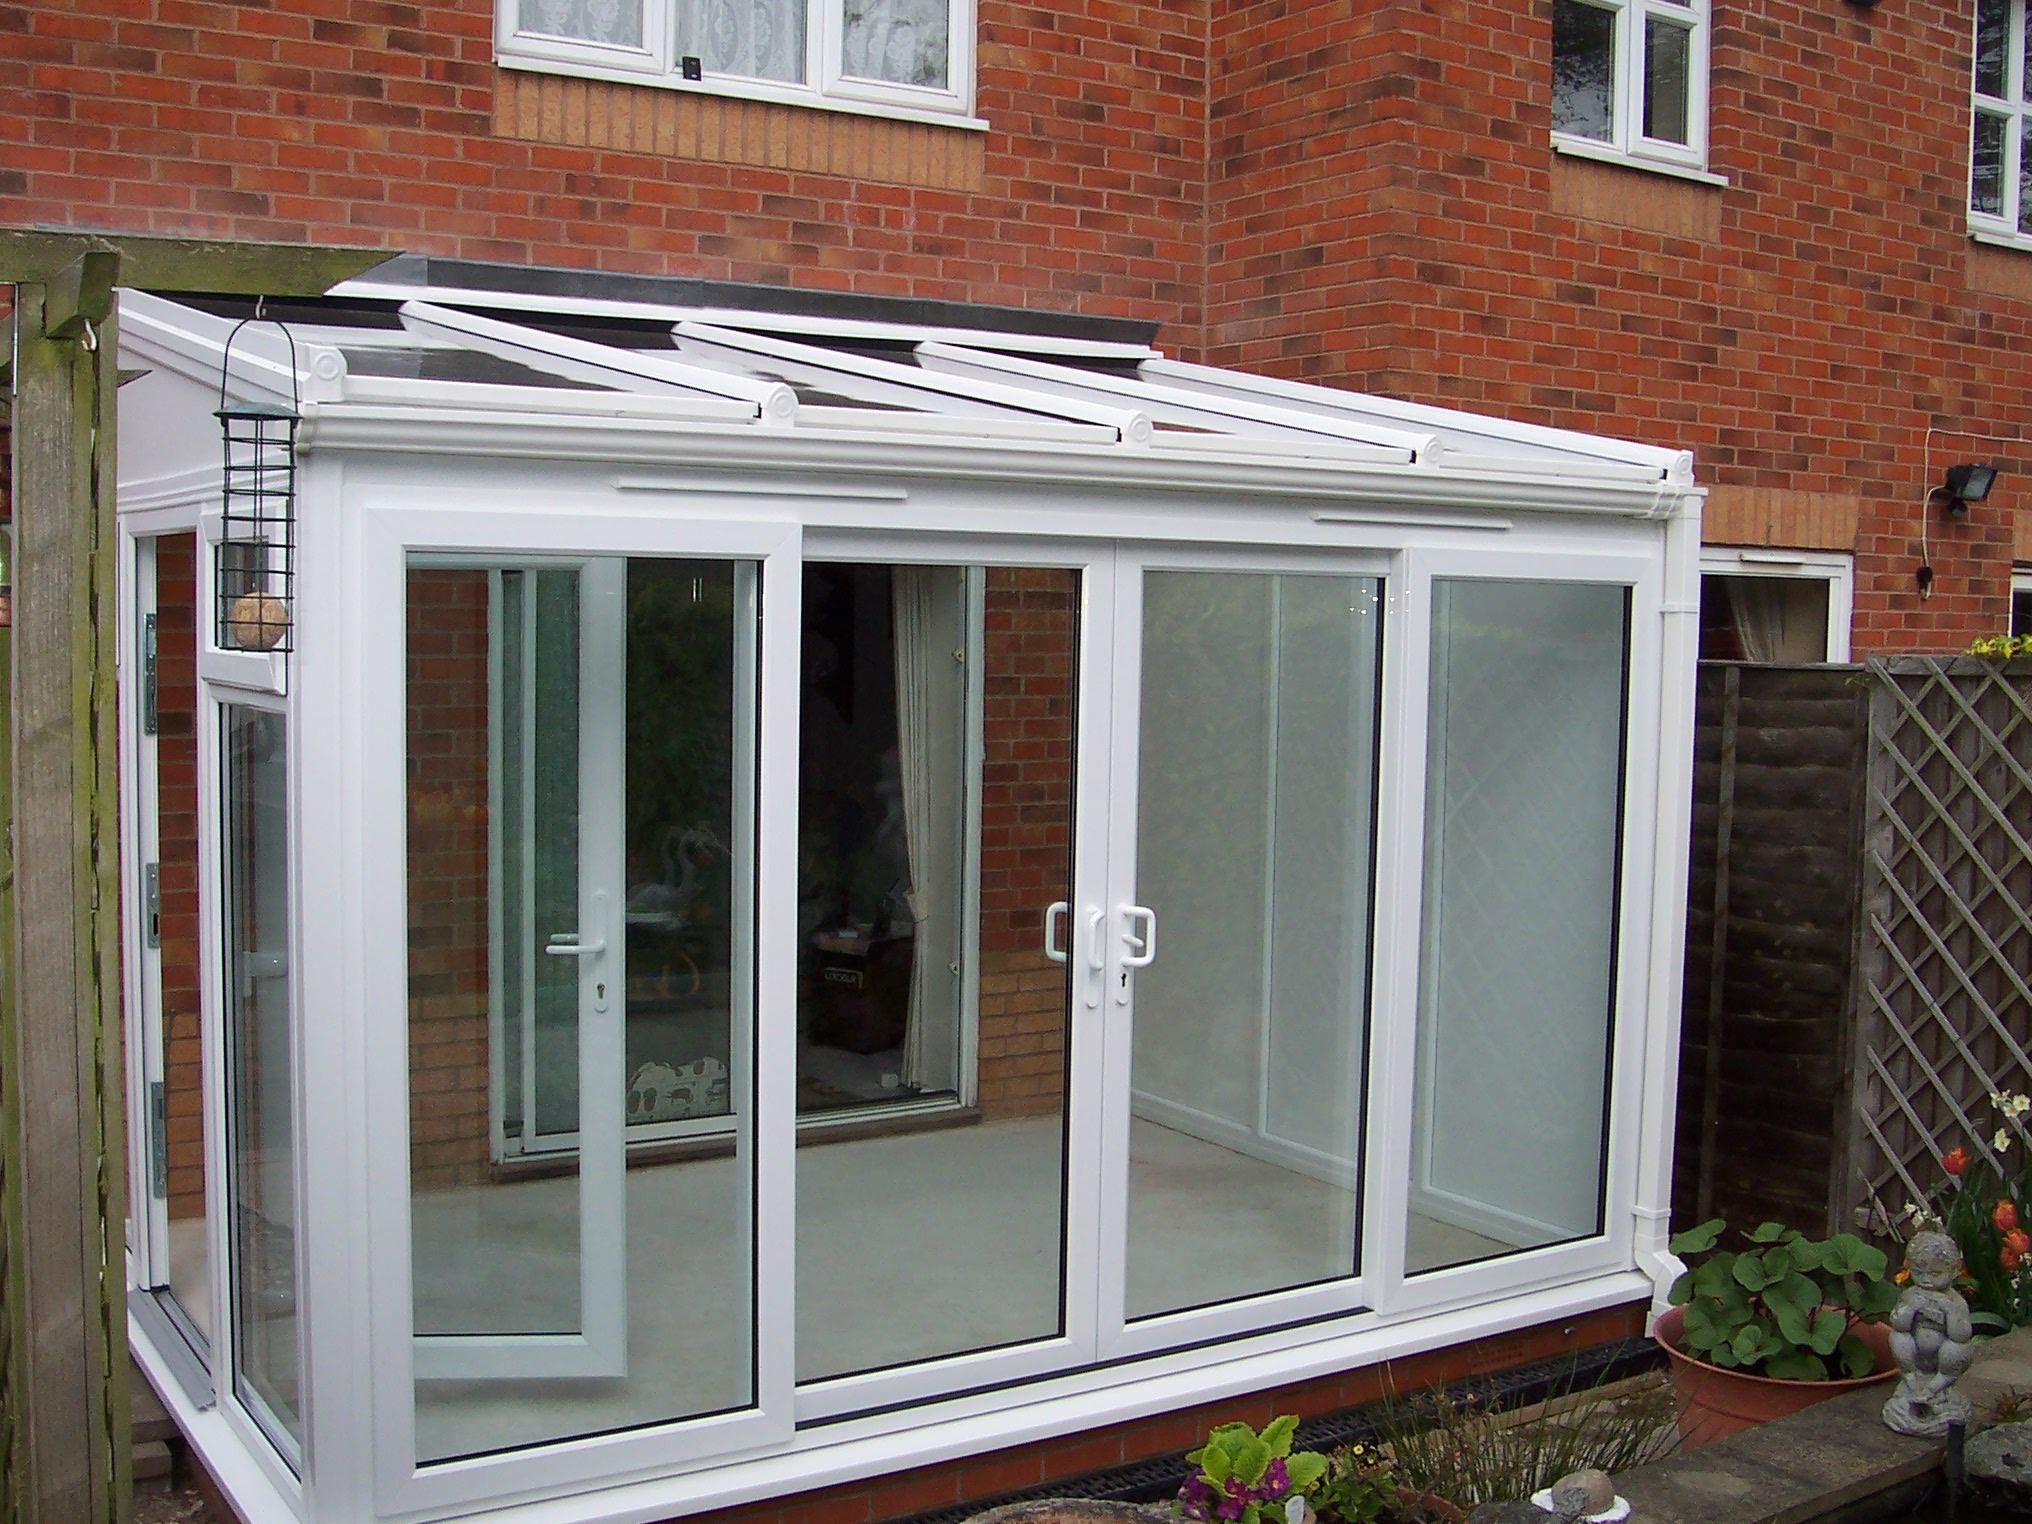 Conservatories concept windows and conservatories essex - Lean To Conservatories Small Http Www Finesse Windows Co